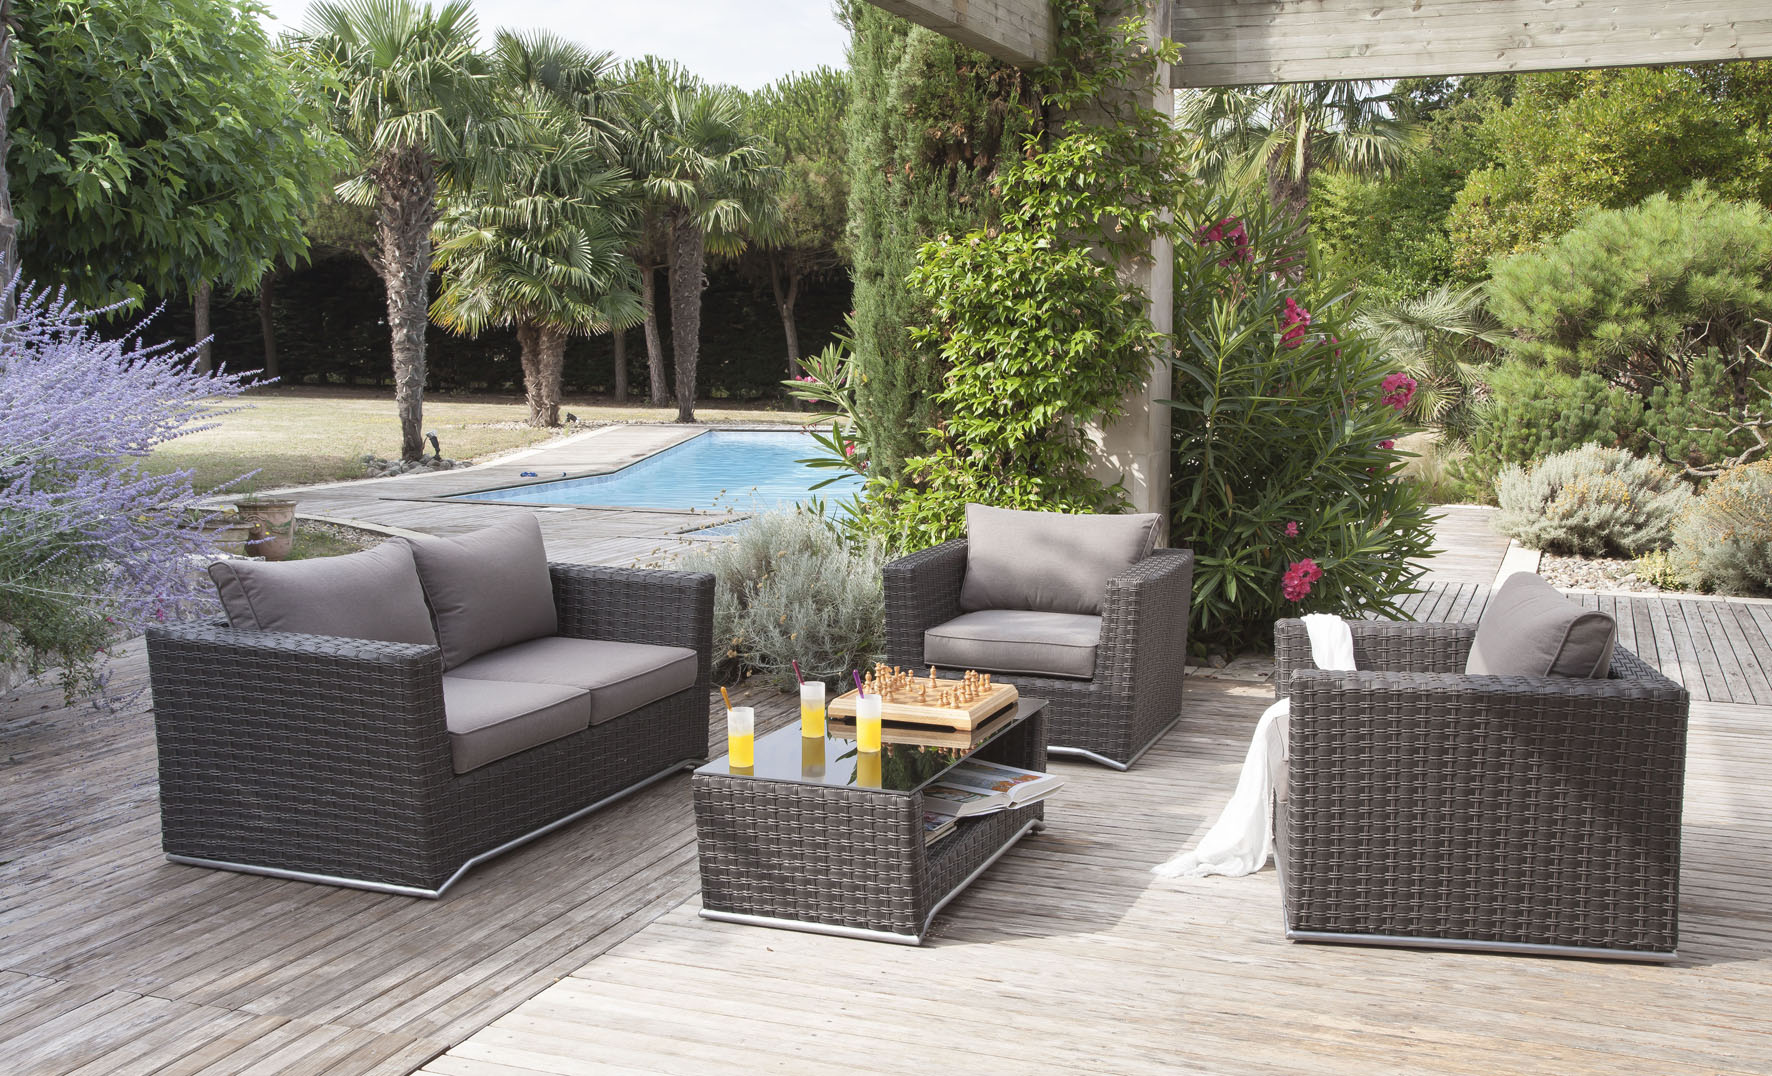 Outdoor la nouvelle collection proloisirs jacky la for Salon de jardin tek